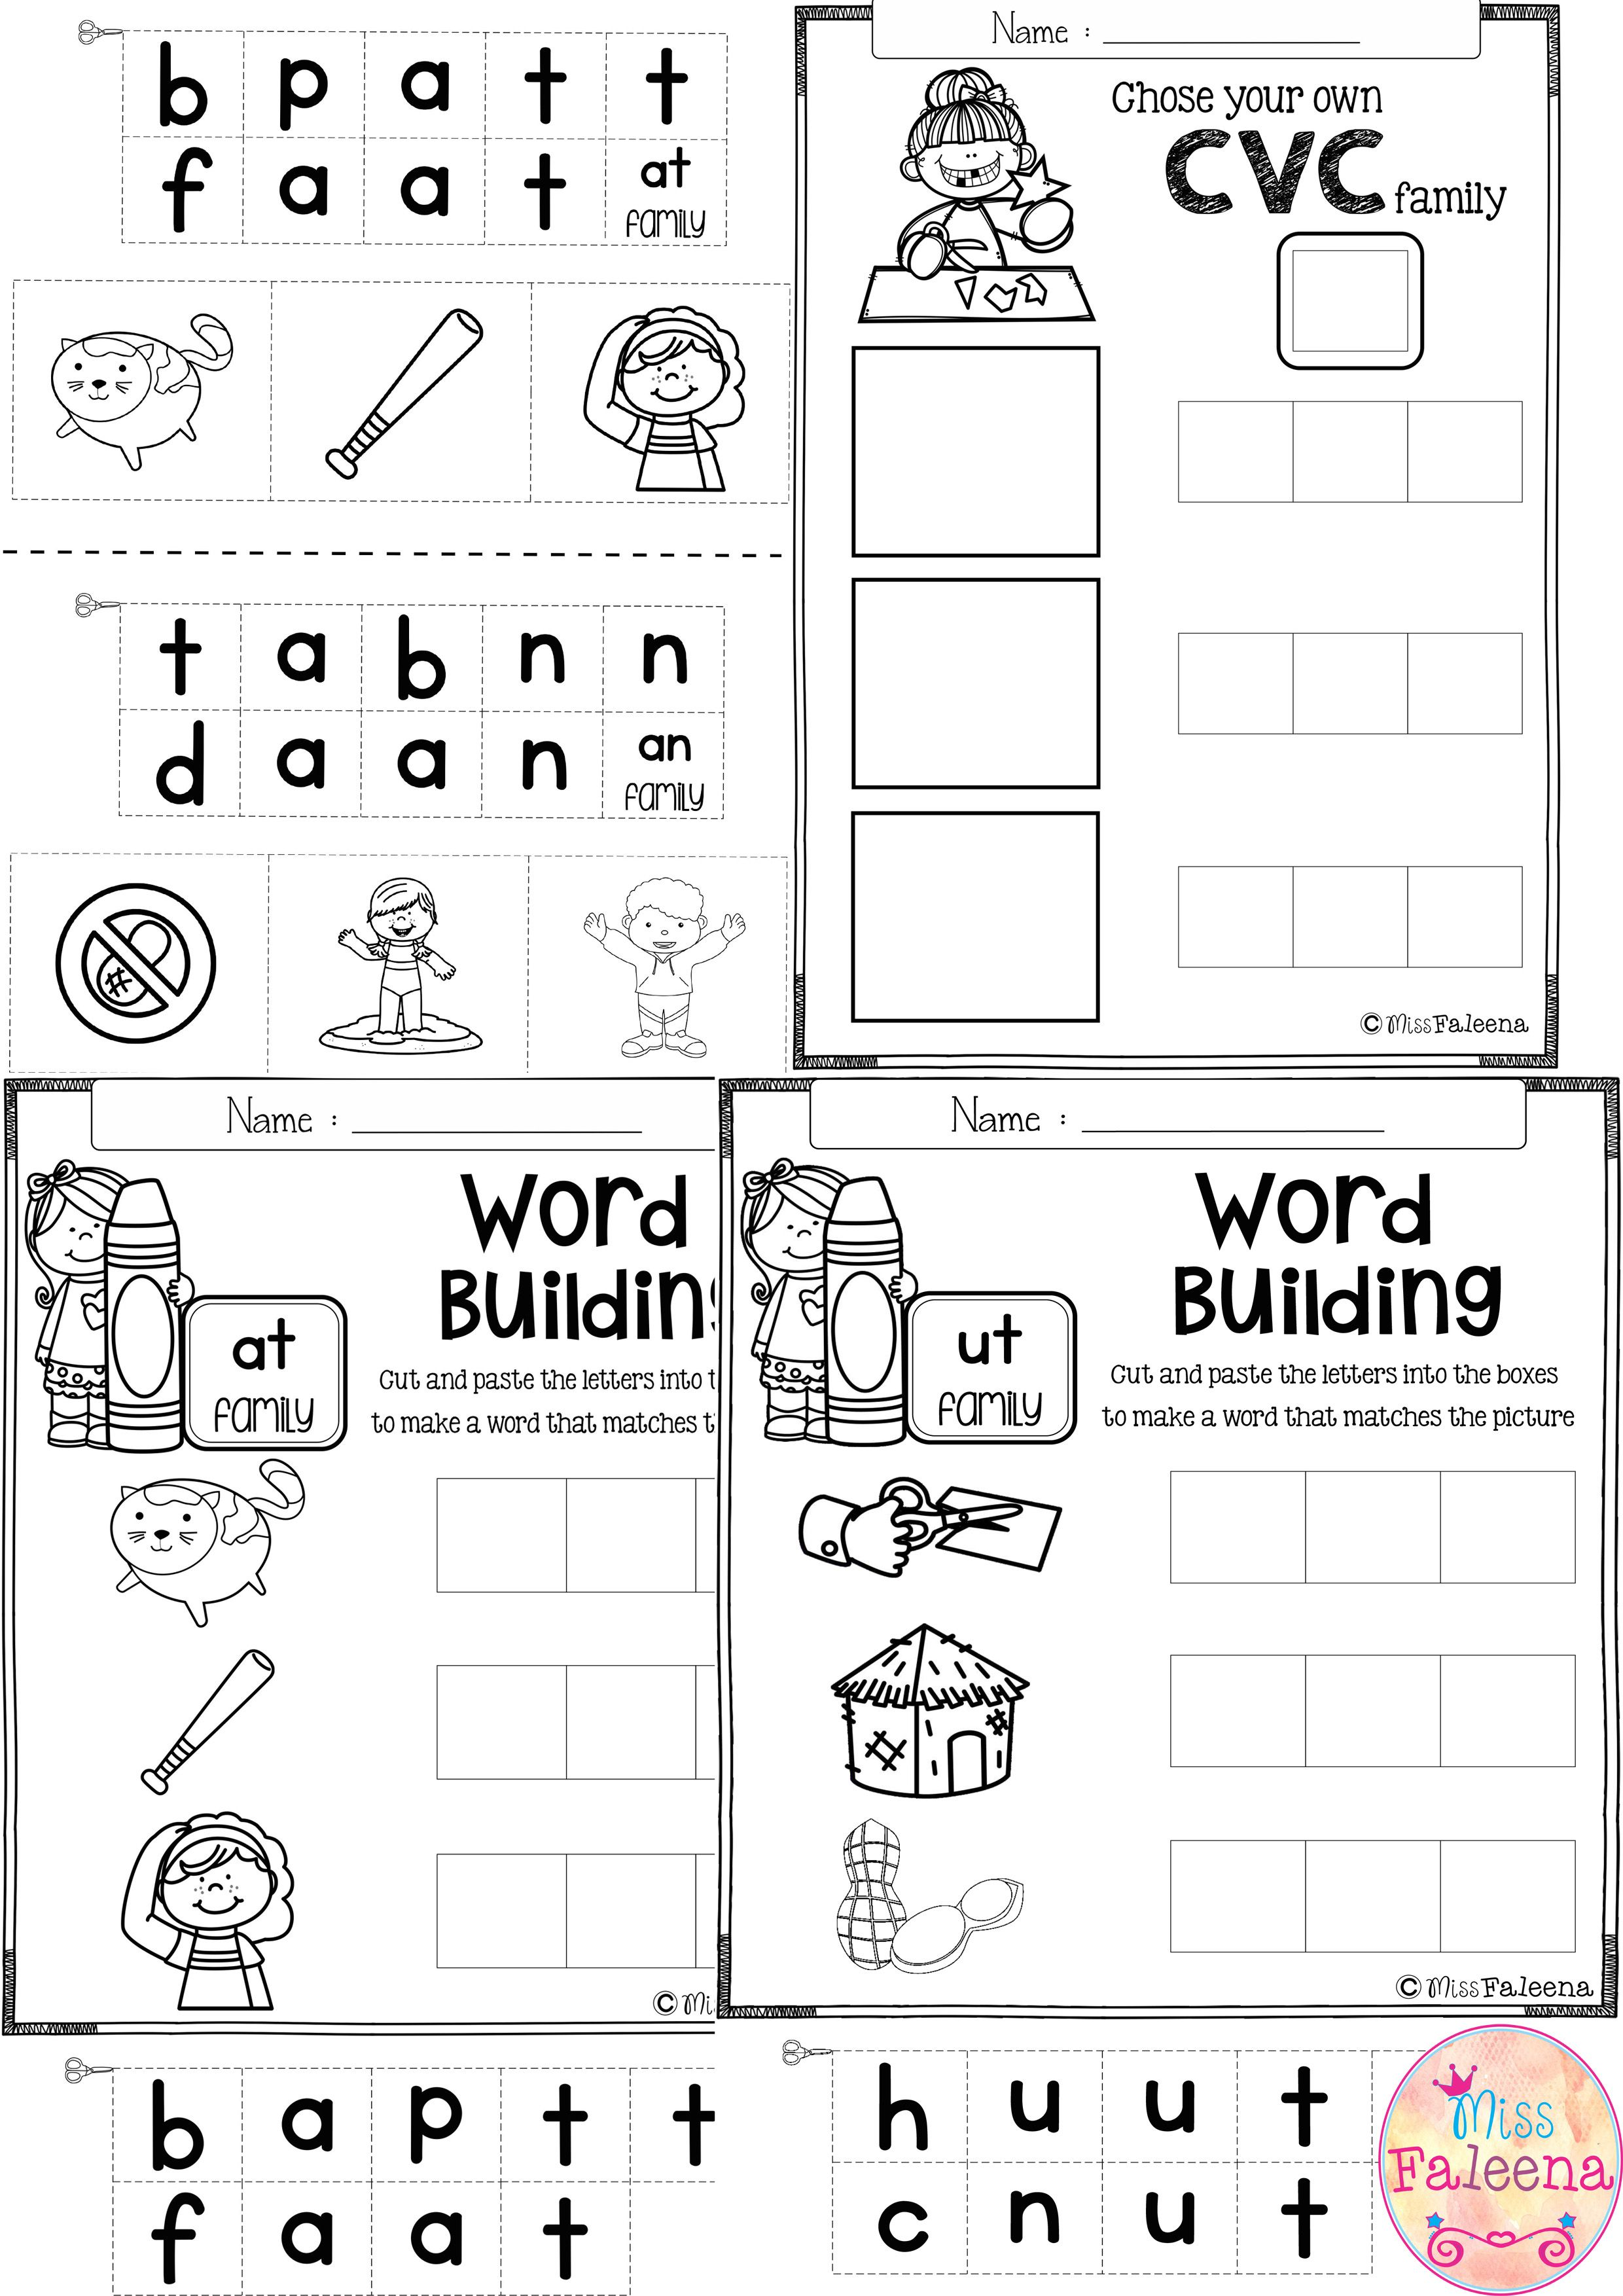 Free CVC Word Building Practice This product will help to teach